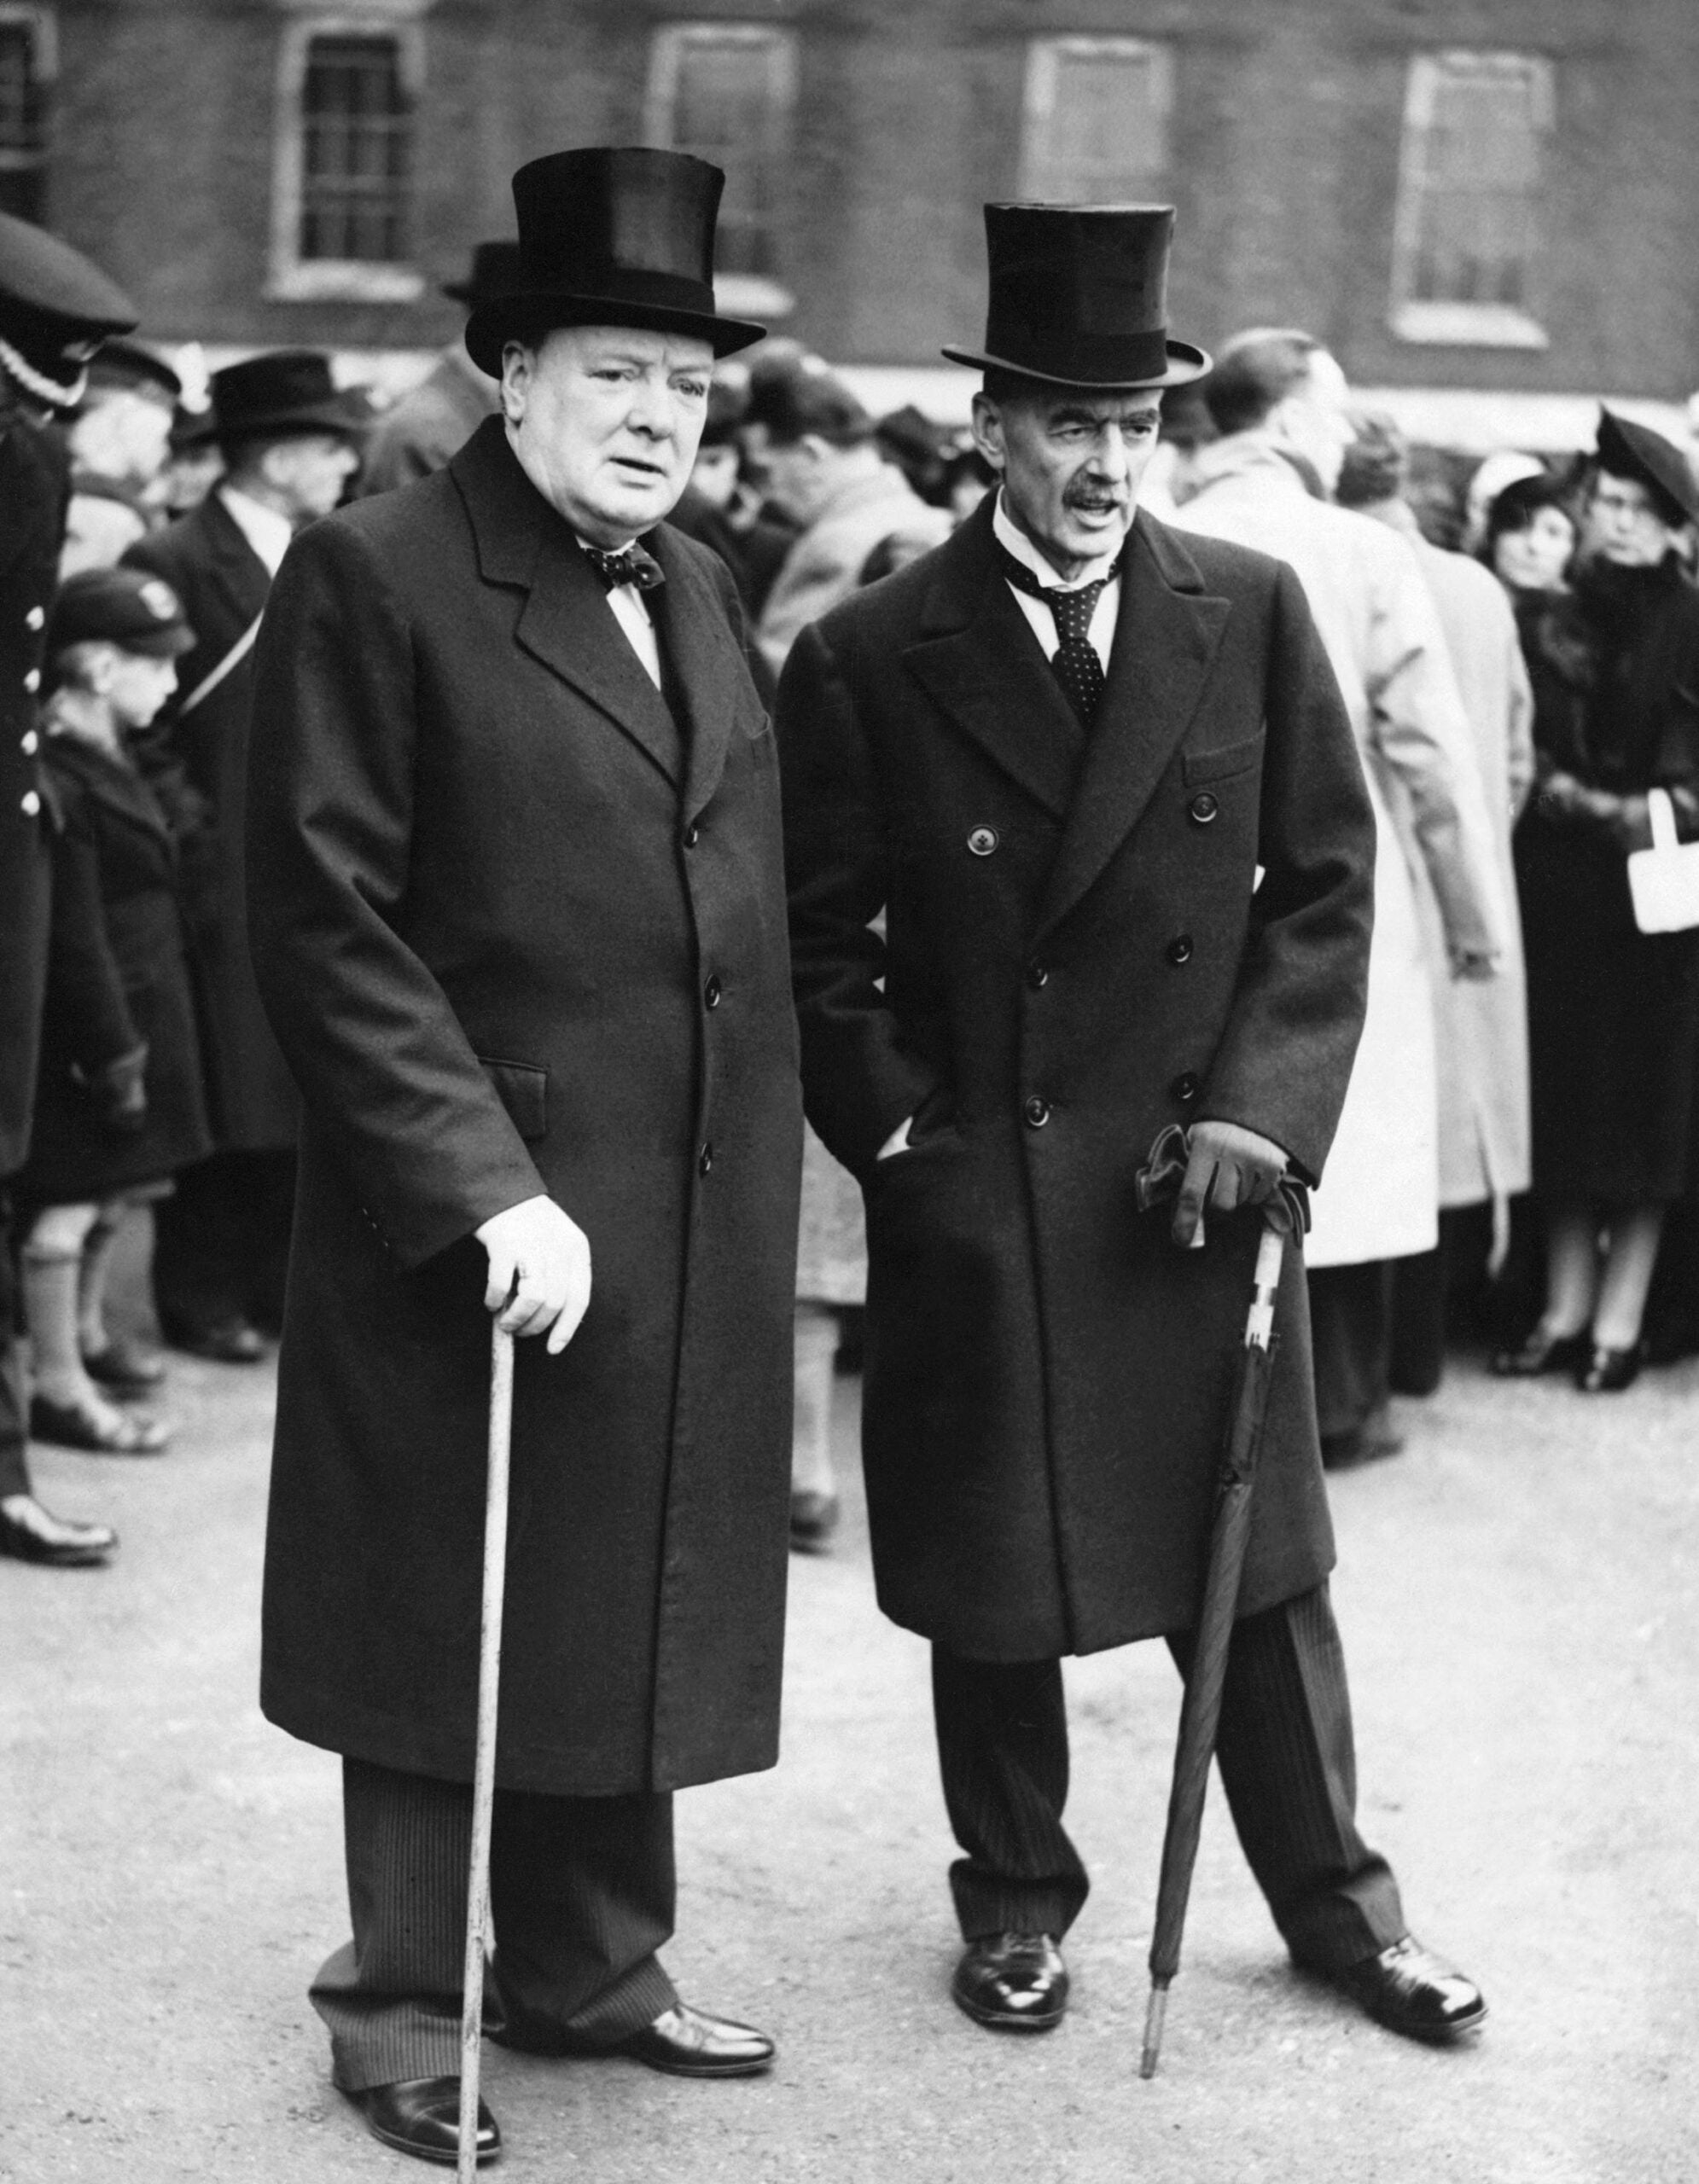 What can Brexit Britain learn from Winston Churchill?